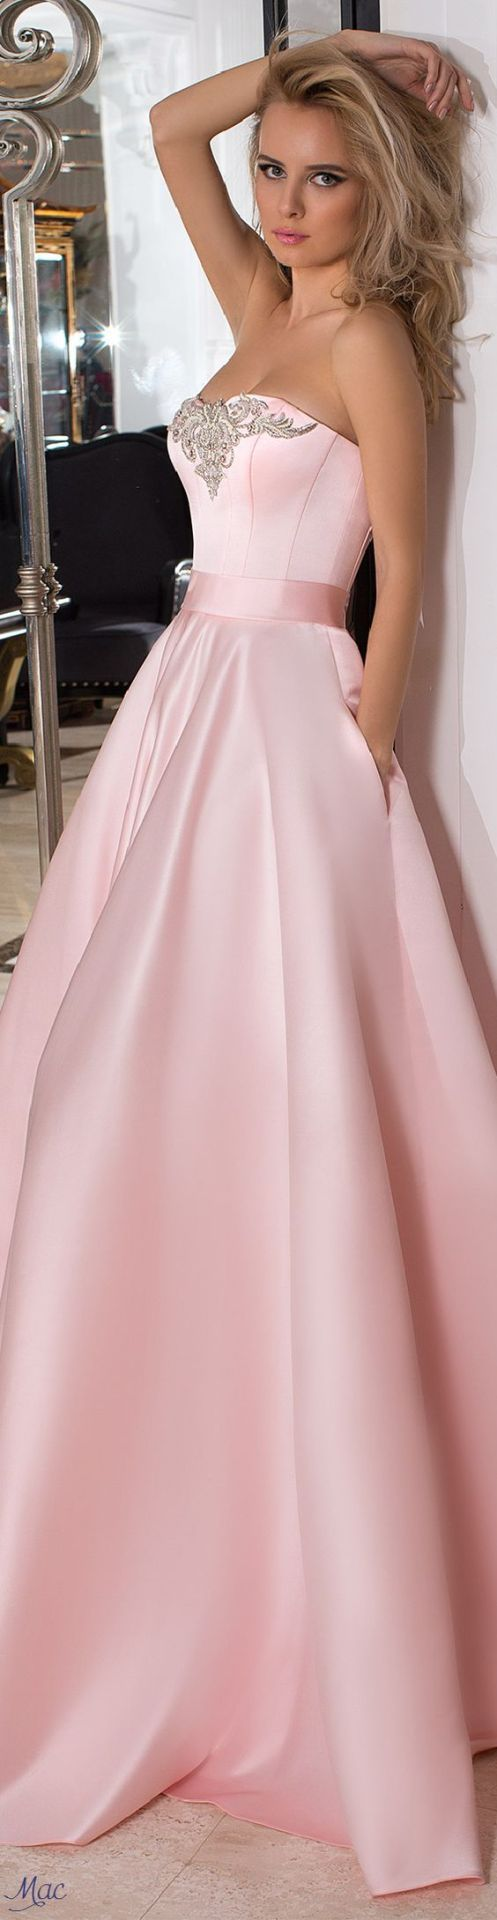 14 best Pronovios images on Pinterest | Dressy outfits, Embroidery ...